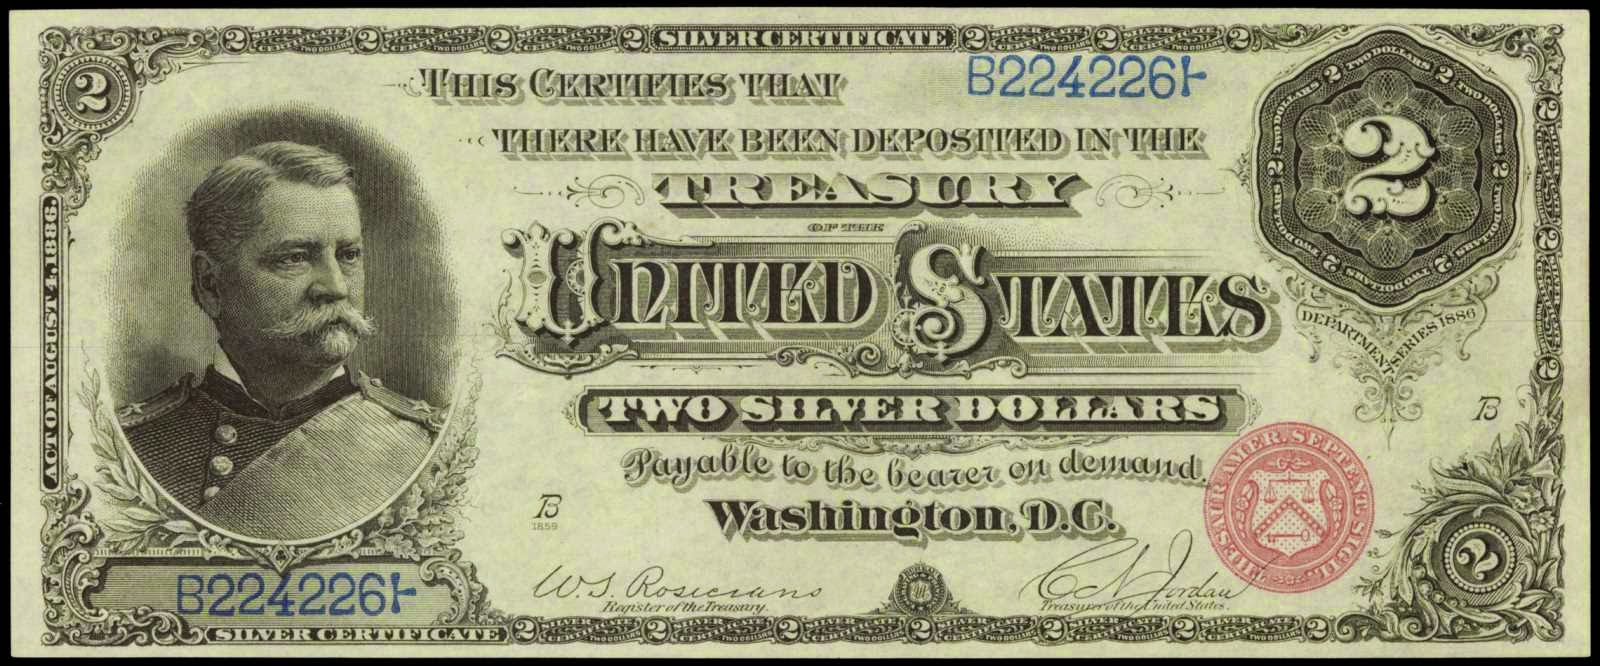 1886 Two Dollar Silver Certificate General Winfield Scott Hancock